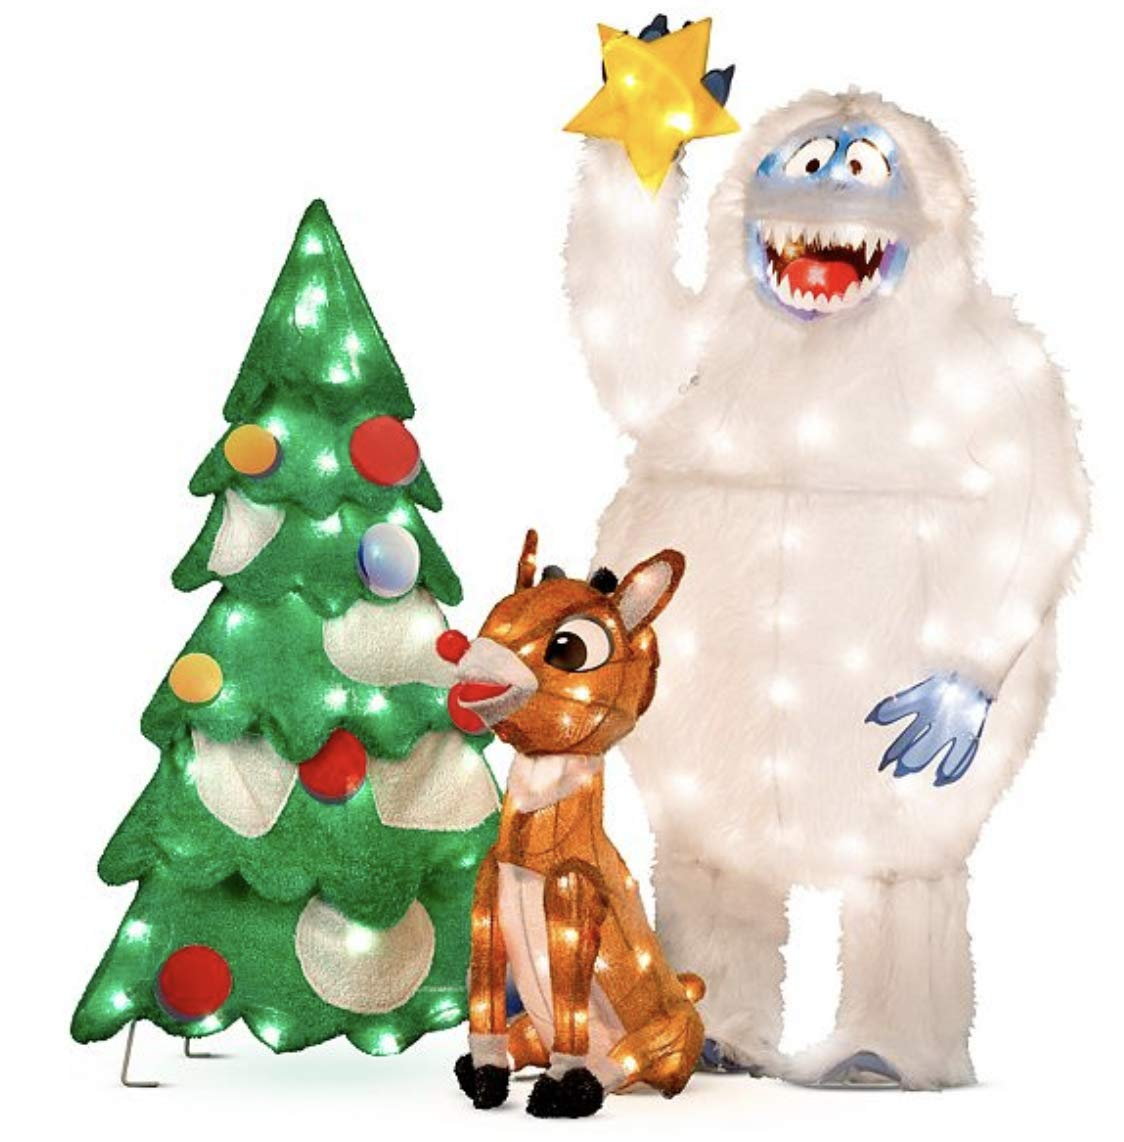 Rudolph Christmas Decorations.Amazon Com Animated Rudolph And Bumble Decorating Tree